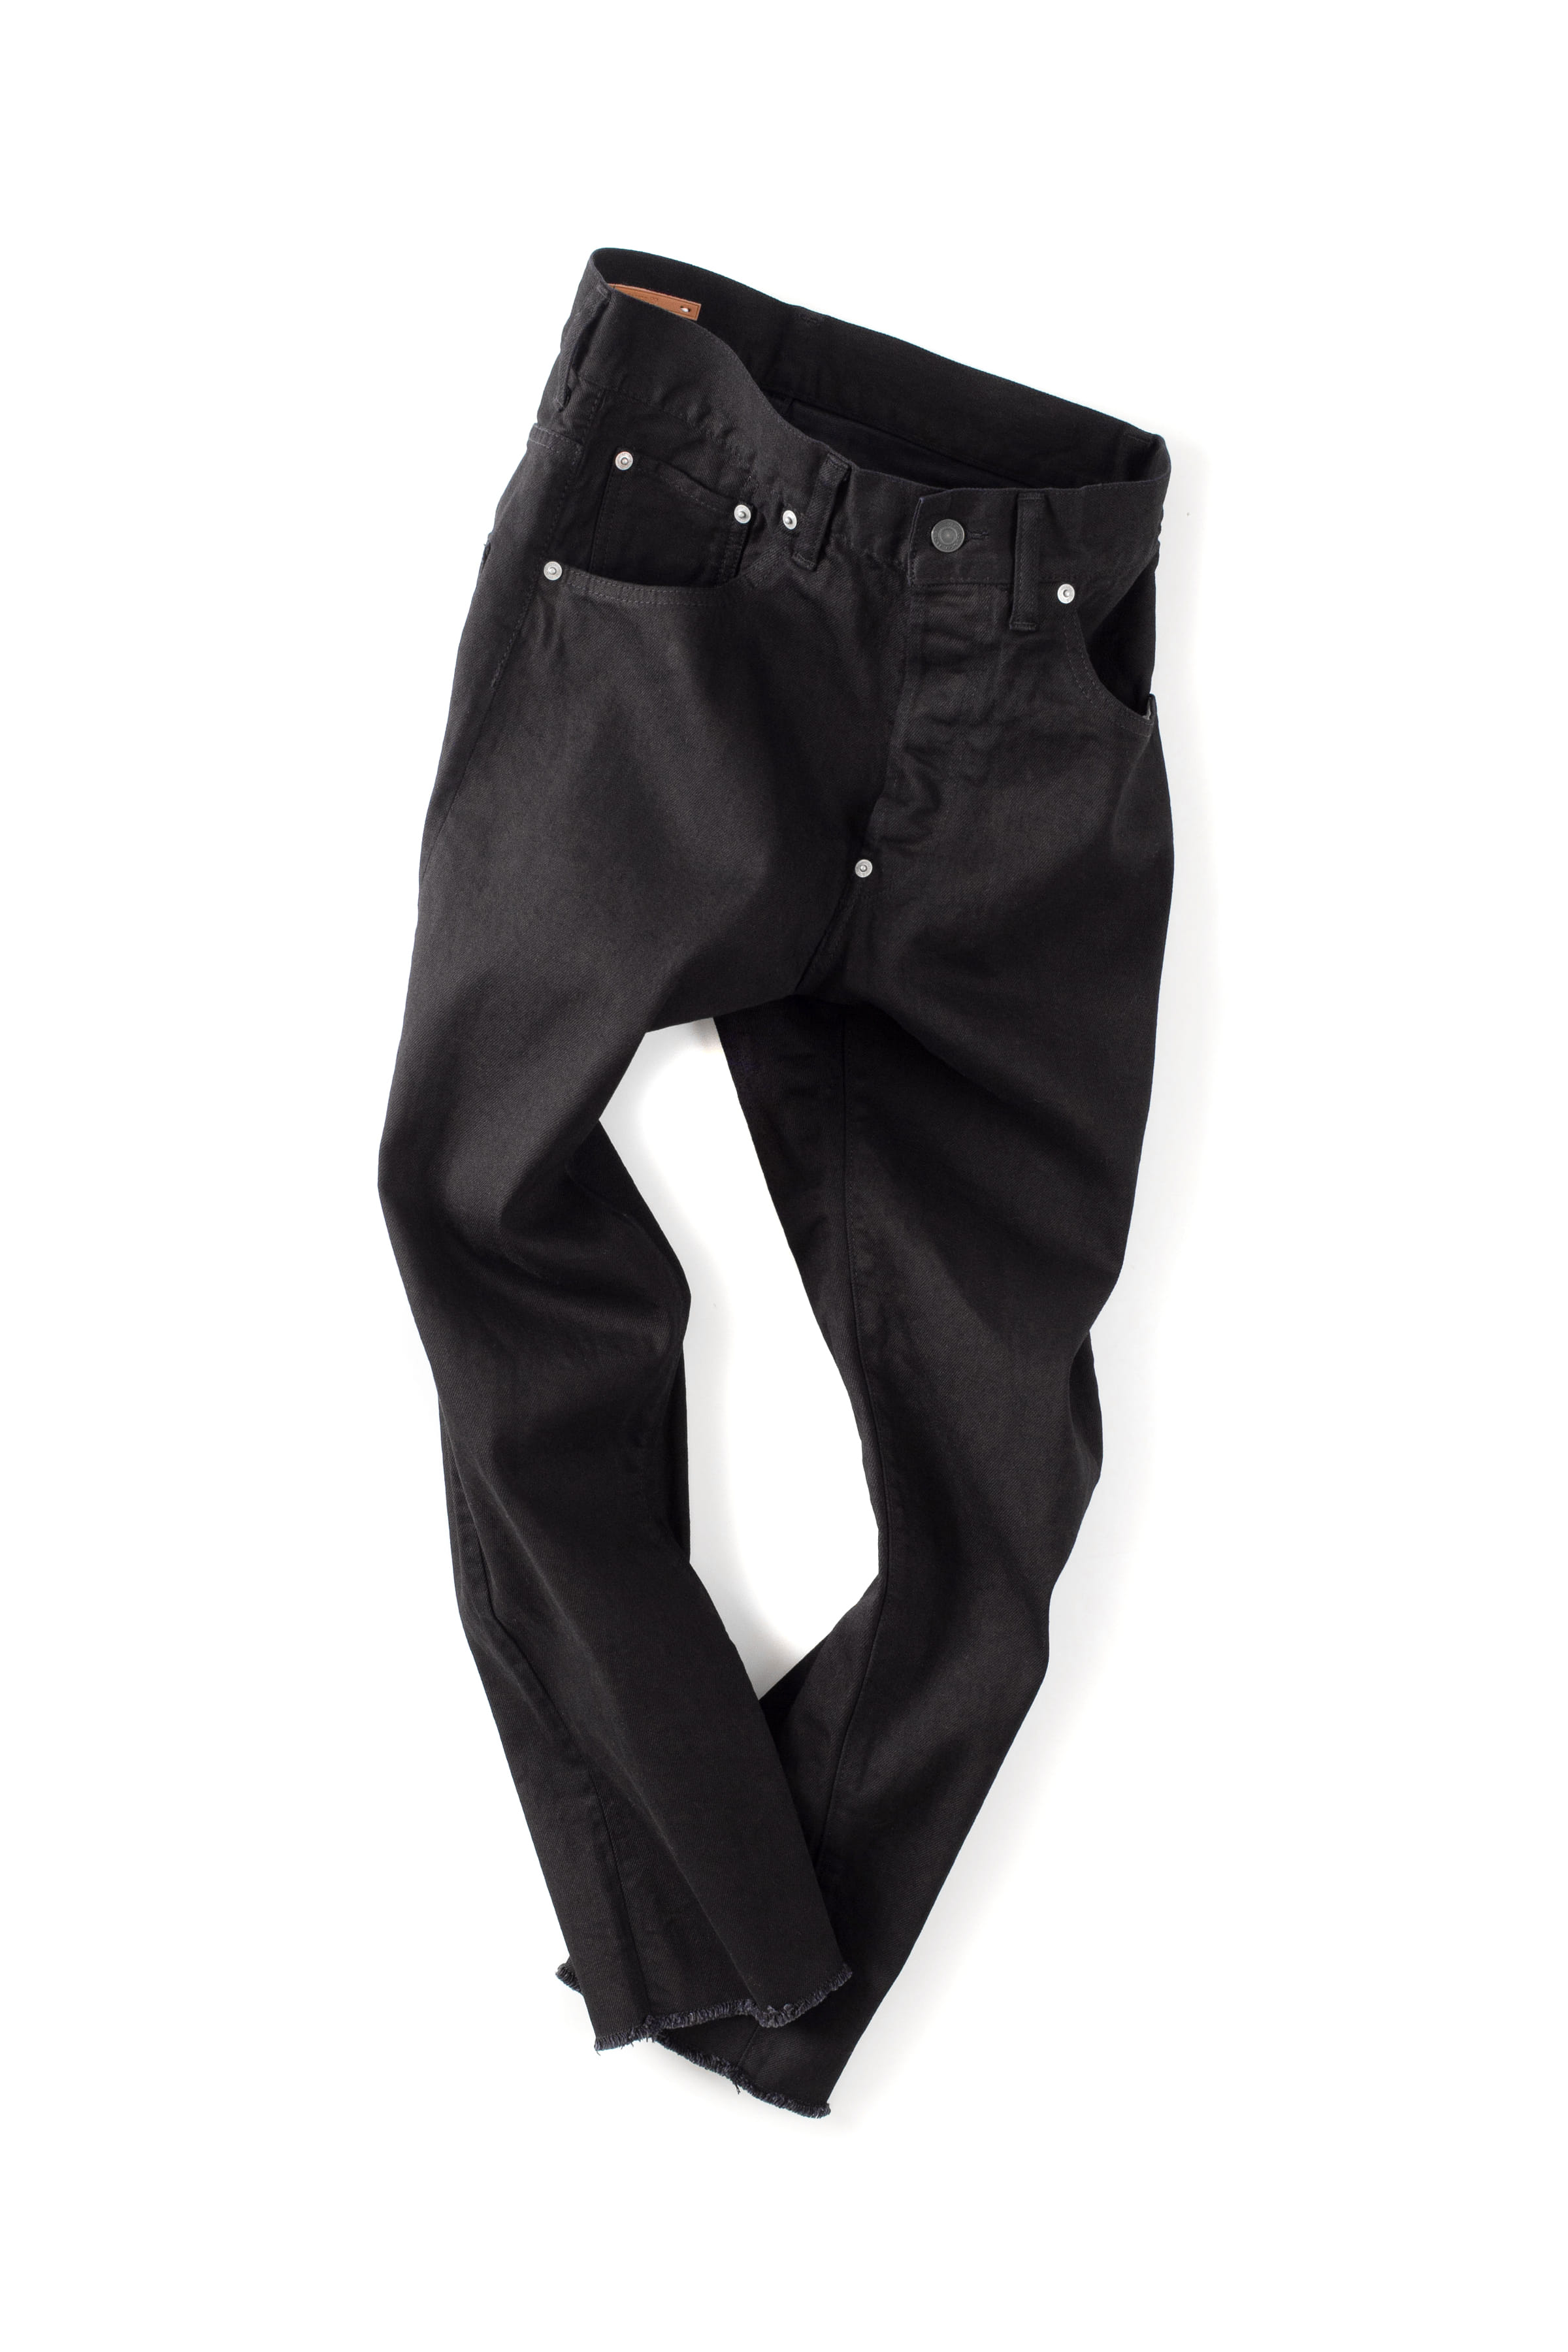 Scye Basics : Law Edge Stretch Denim Jeans (Black)